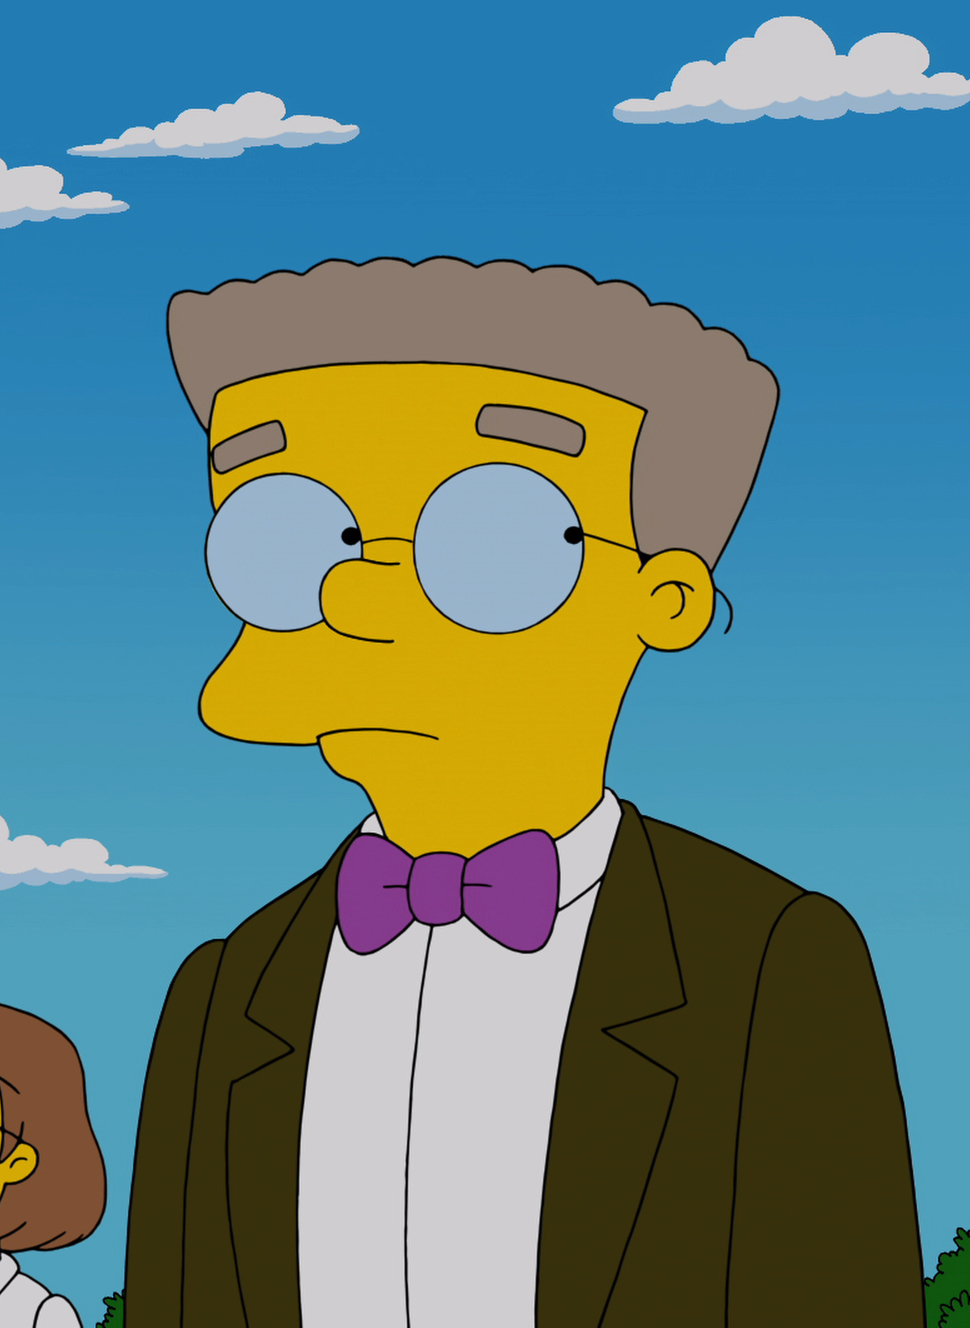 Smithers on THE SIMPSONS